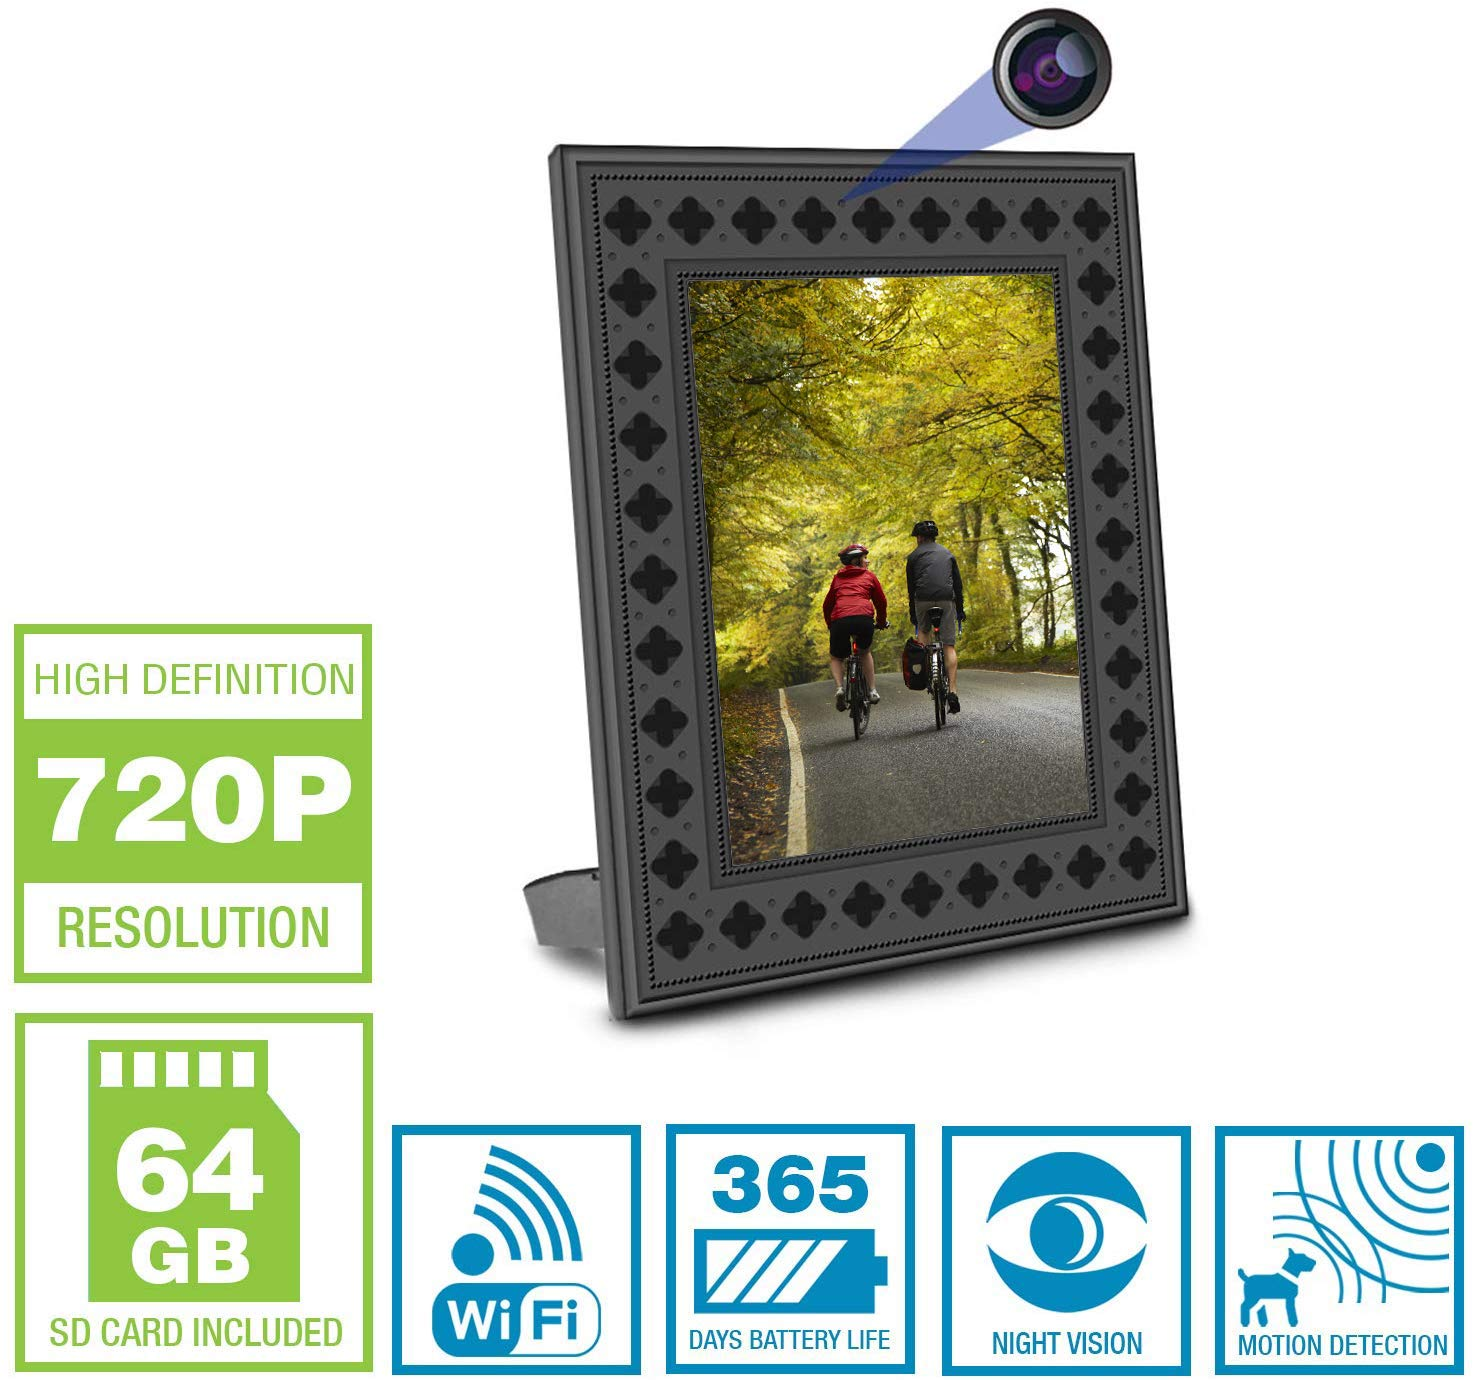 NuCam Yieye WiFi Photo Frame Hidden Spy Camera for Home/Office Security & Pet/Kid Surveillance w. 720P HD, 365 Days Battery Life, Night Vision & Instant Alerts(Bonus 64GB SD Card Included)